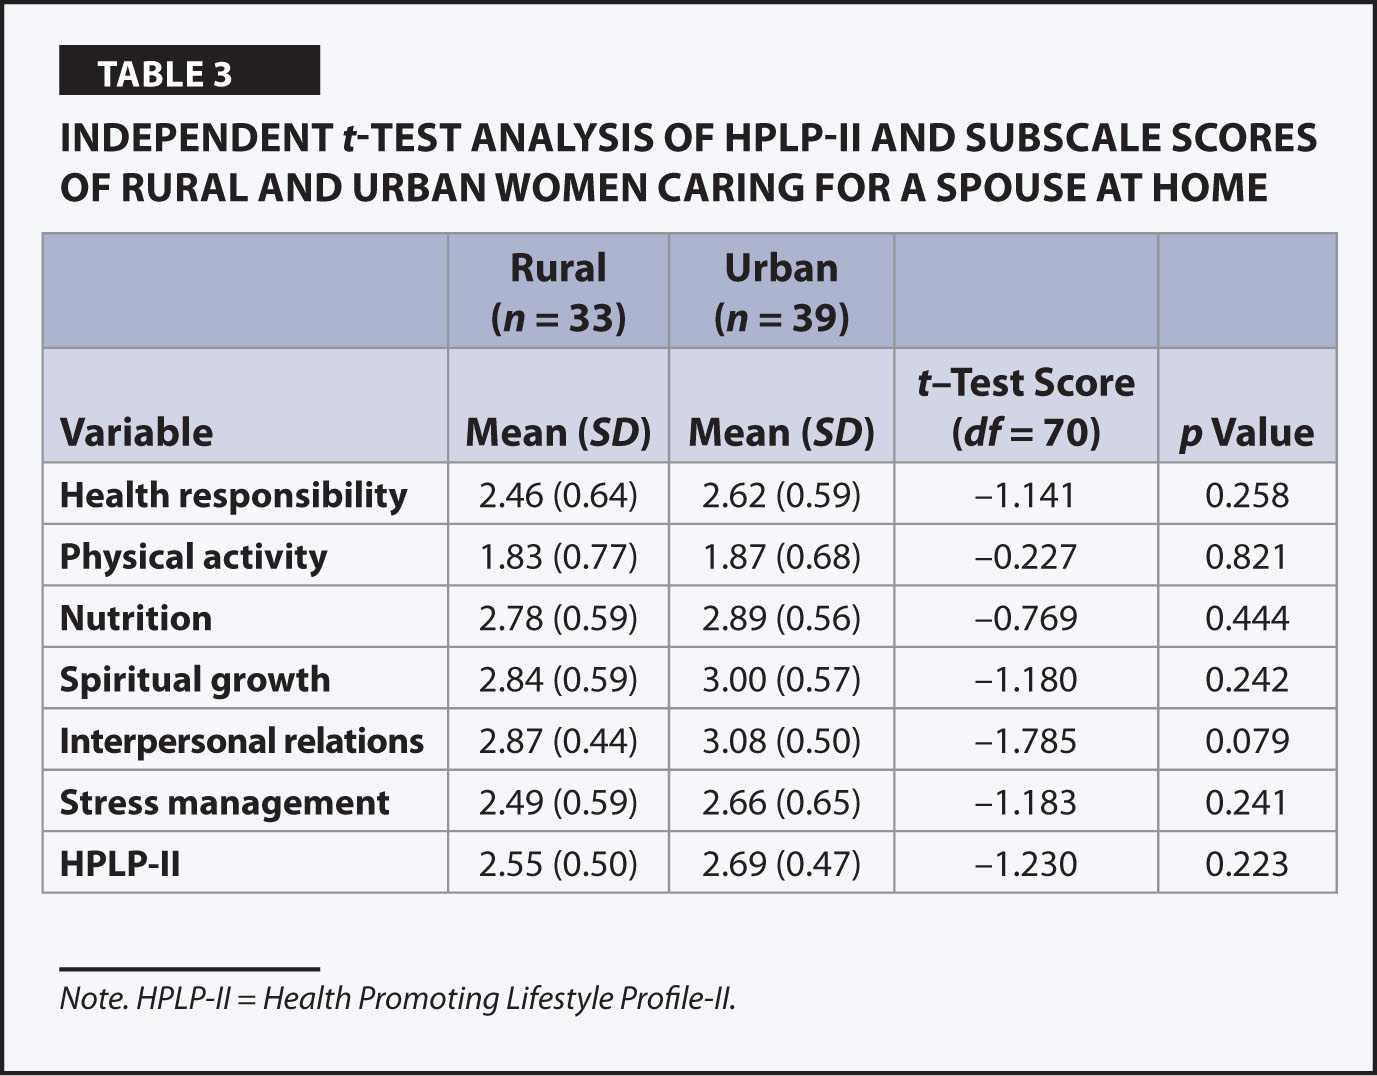 Independent t-Test Analysis of Hplp-II and Subscale Scores of Rural and Urban Women Caring for a Spouse at Home